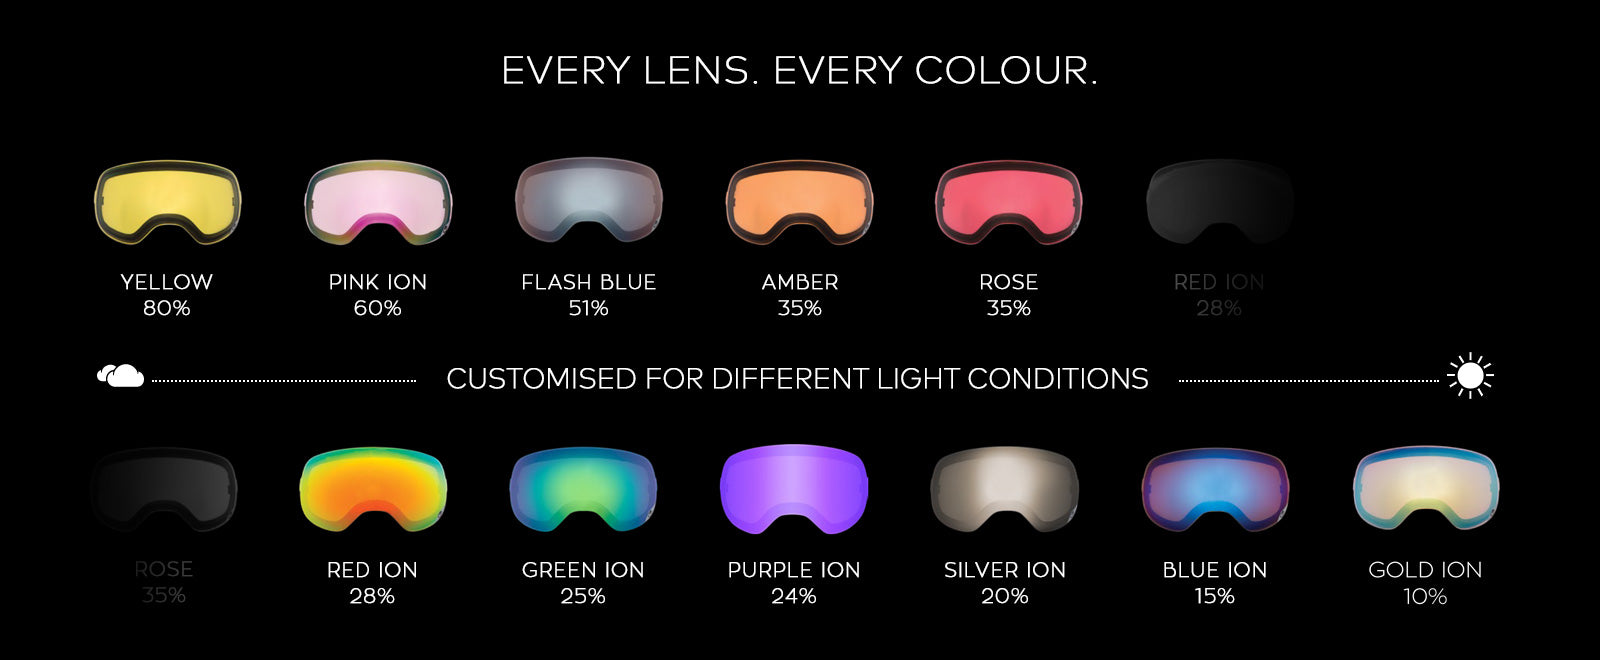 a7a5f08d7e4 Lumalens is a colour optimized lens technology offering ultra  high-definition optics across the entire spectrum of light conditions.